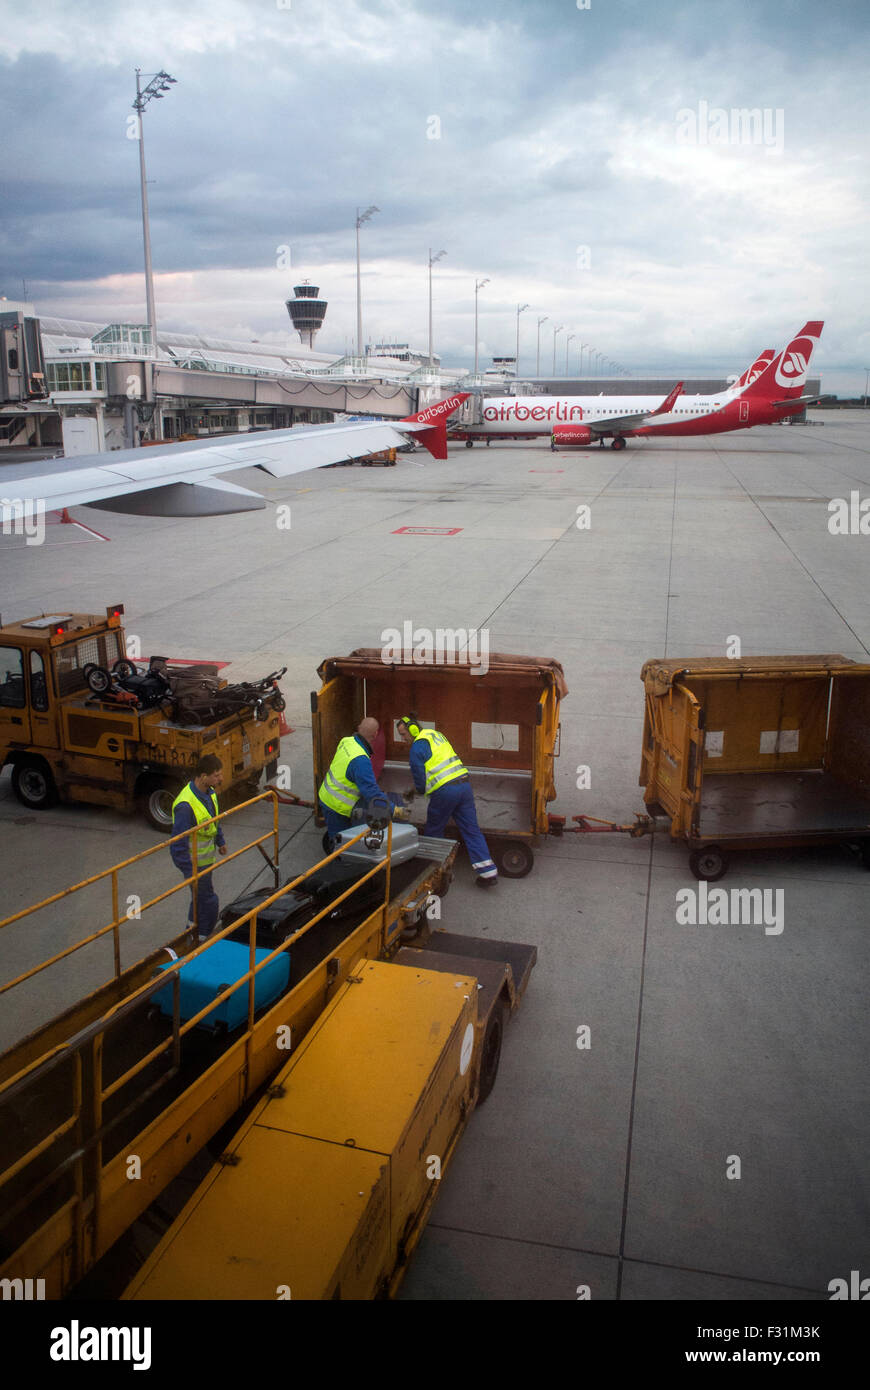 Baggage handers unloading baggage from an Air Berlin flight at Munich Airport, Germany. - Stock Image